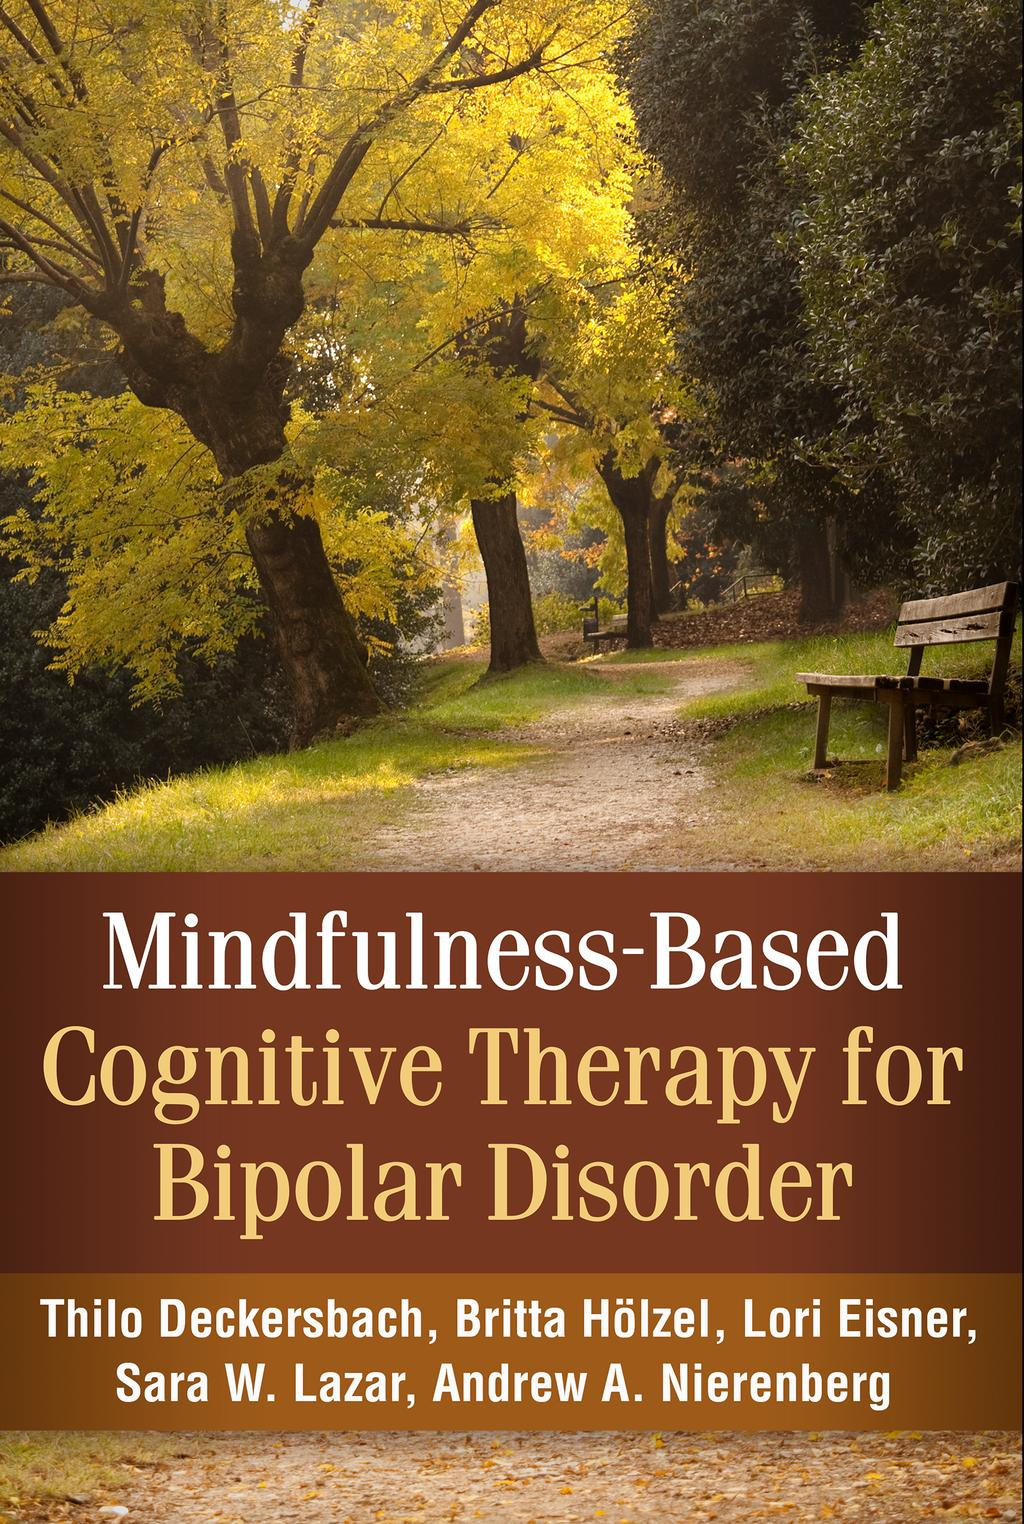 Mindfulness-Based Cognitive-Behavioral Therapy for Bipolar Disorder